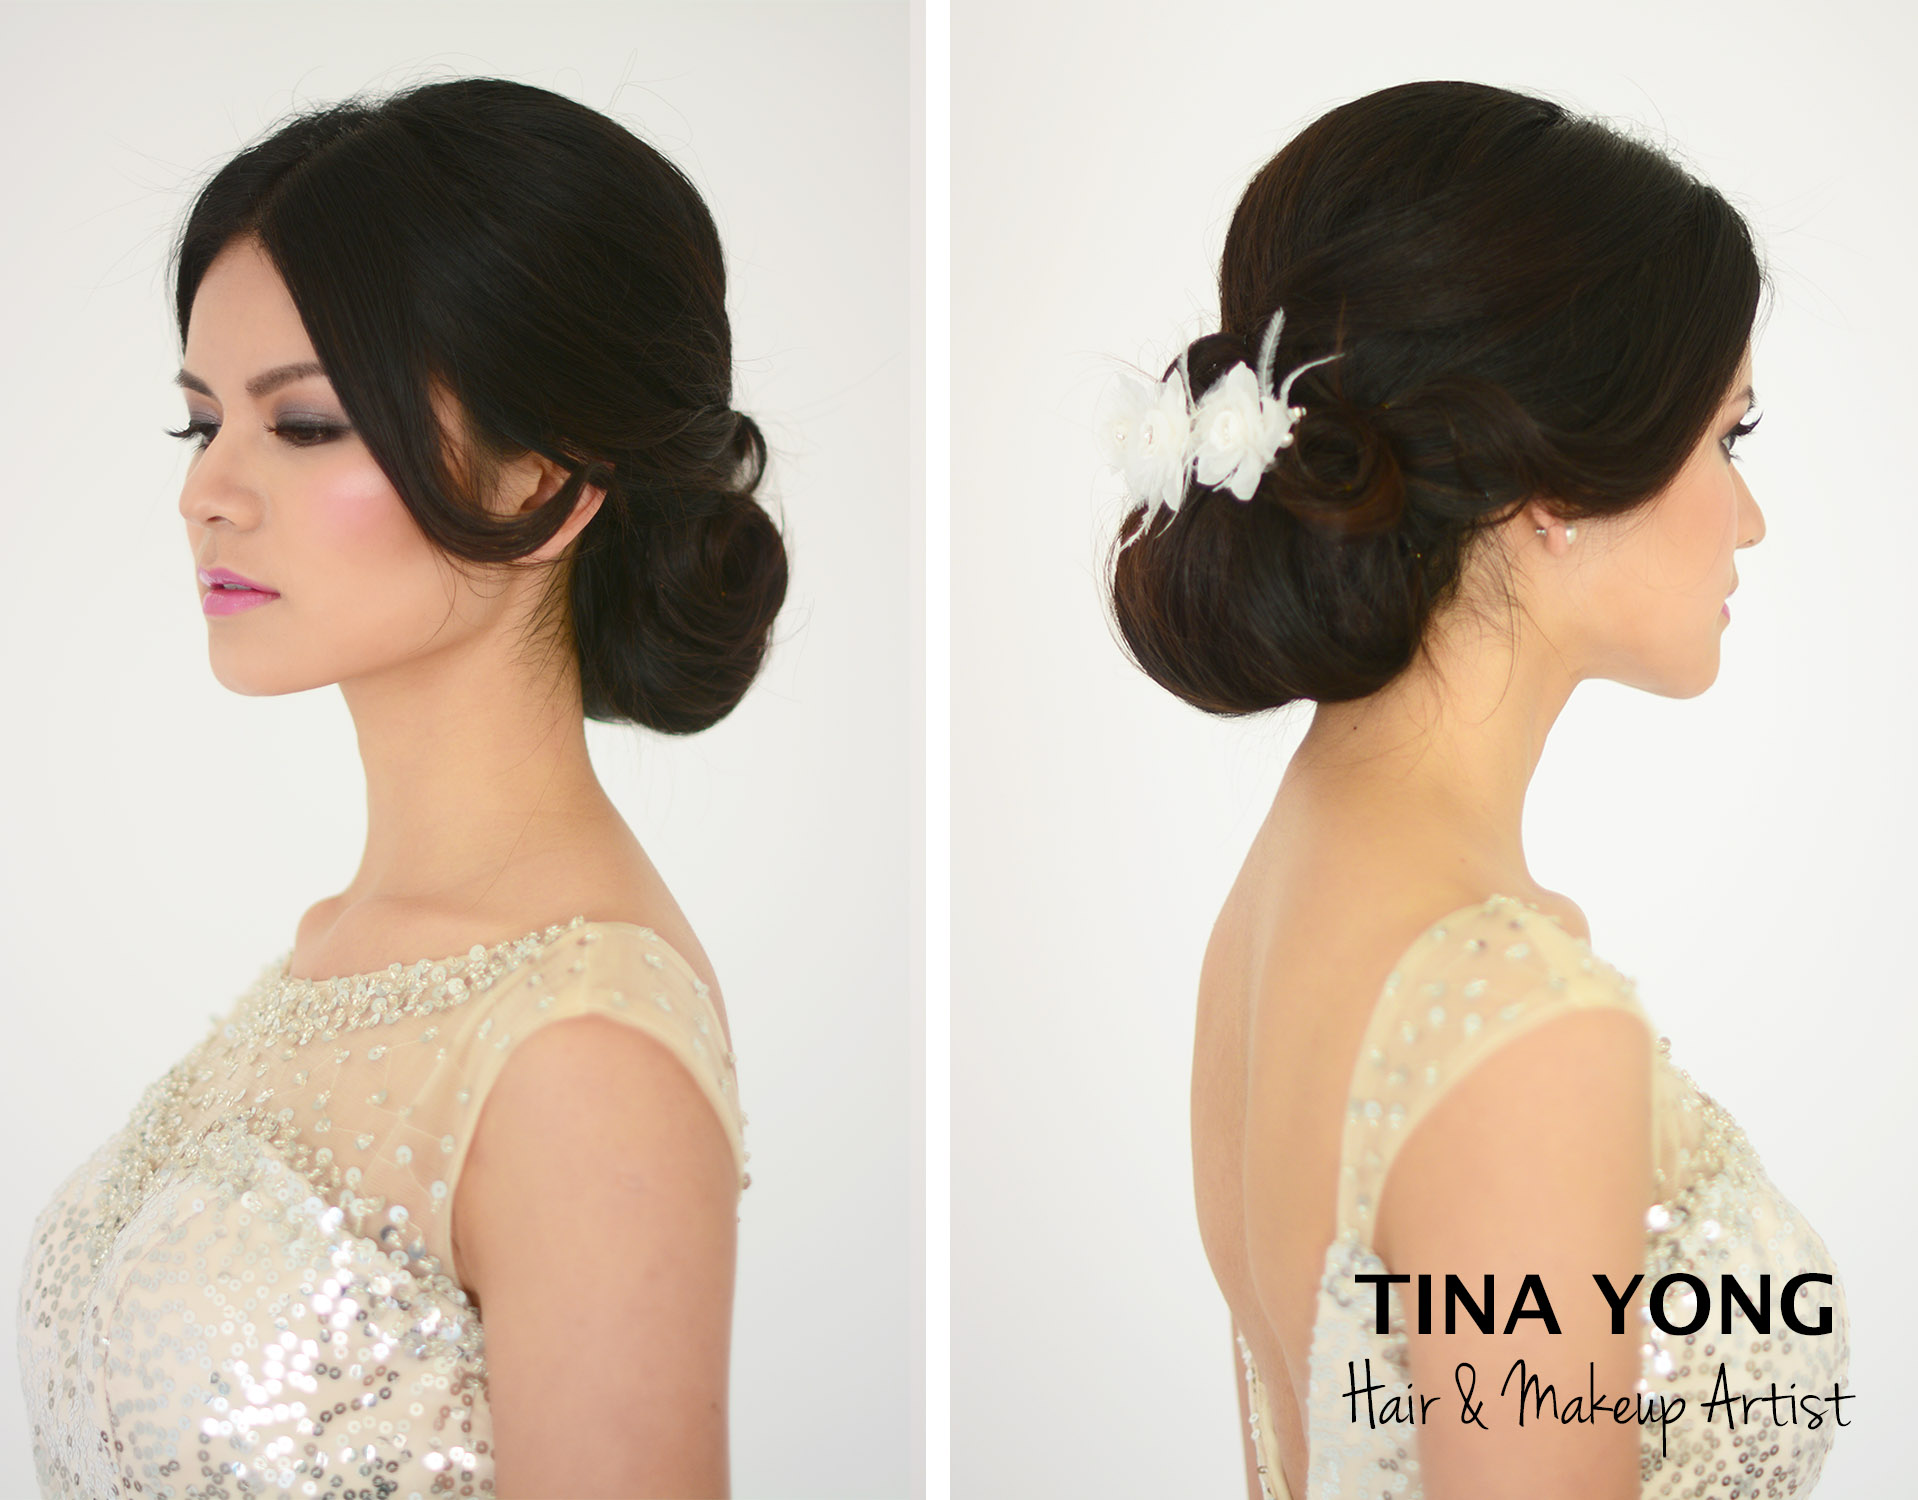 TINA YONG | Hair & Makeup Artist